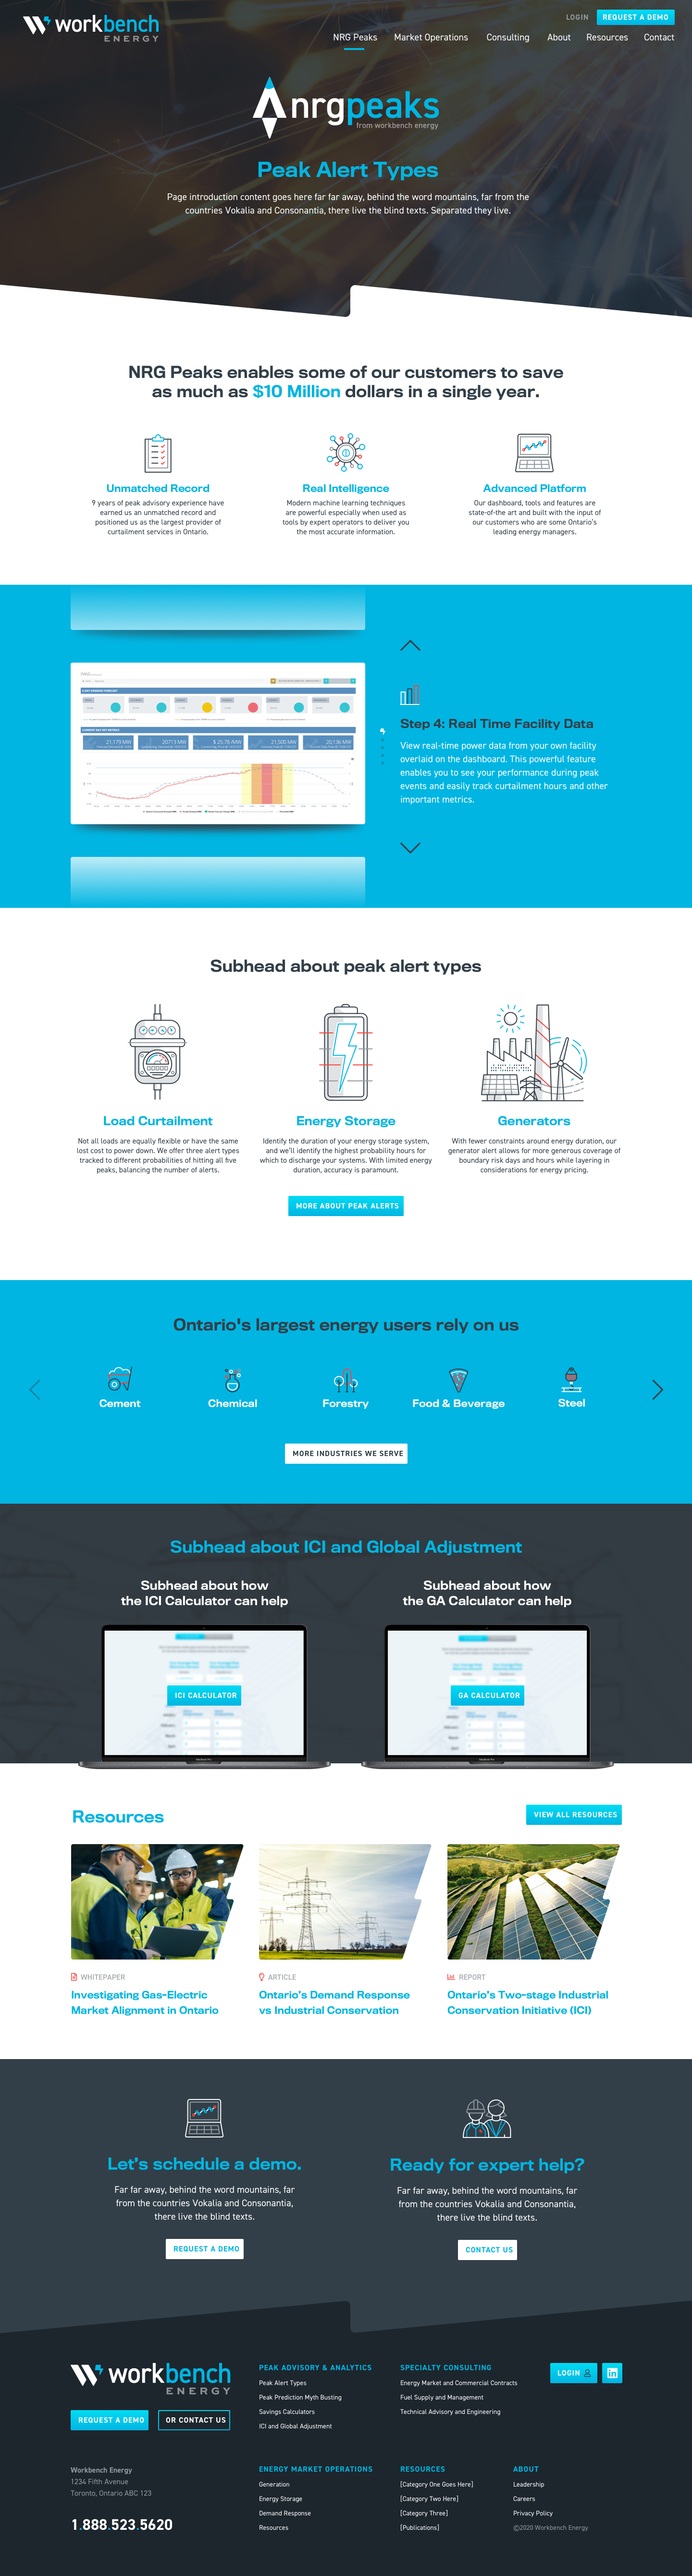 Web Design for Industrial Companies - Workbench Energy